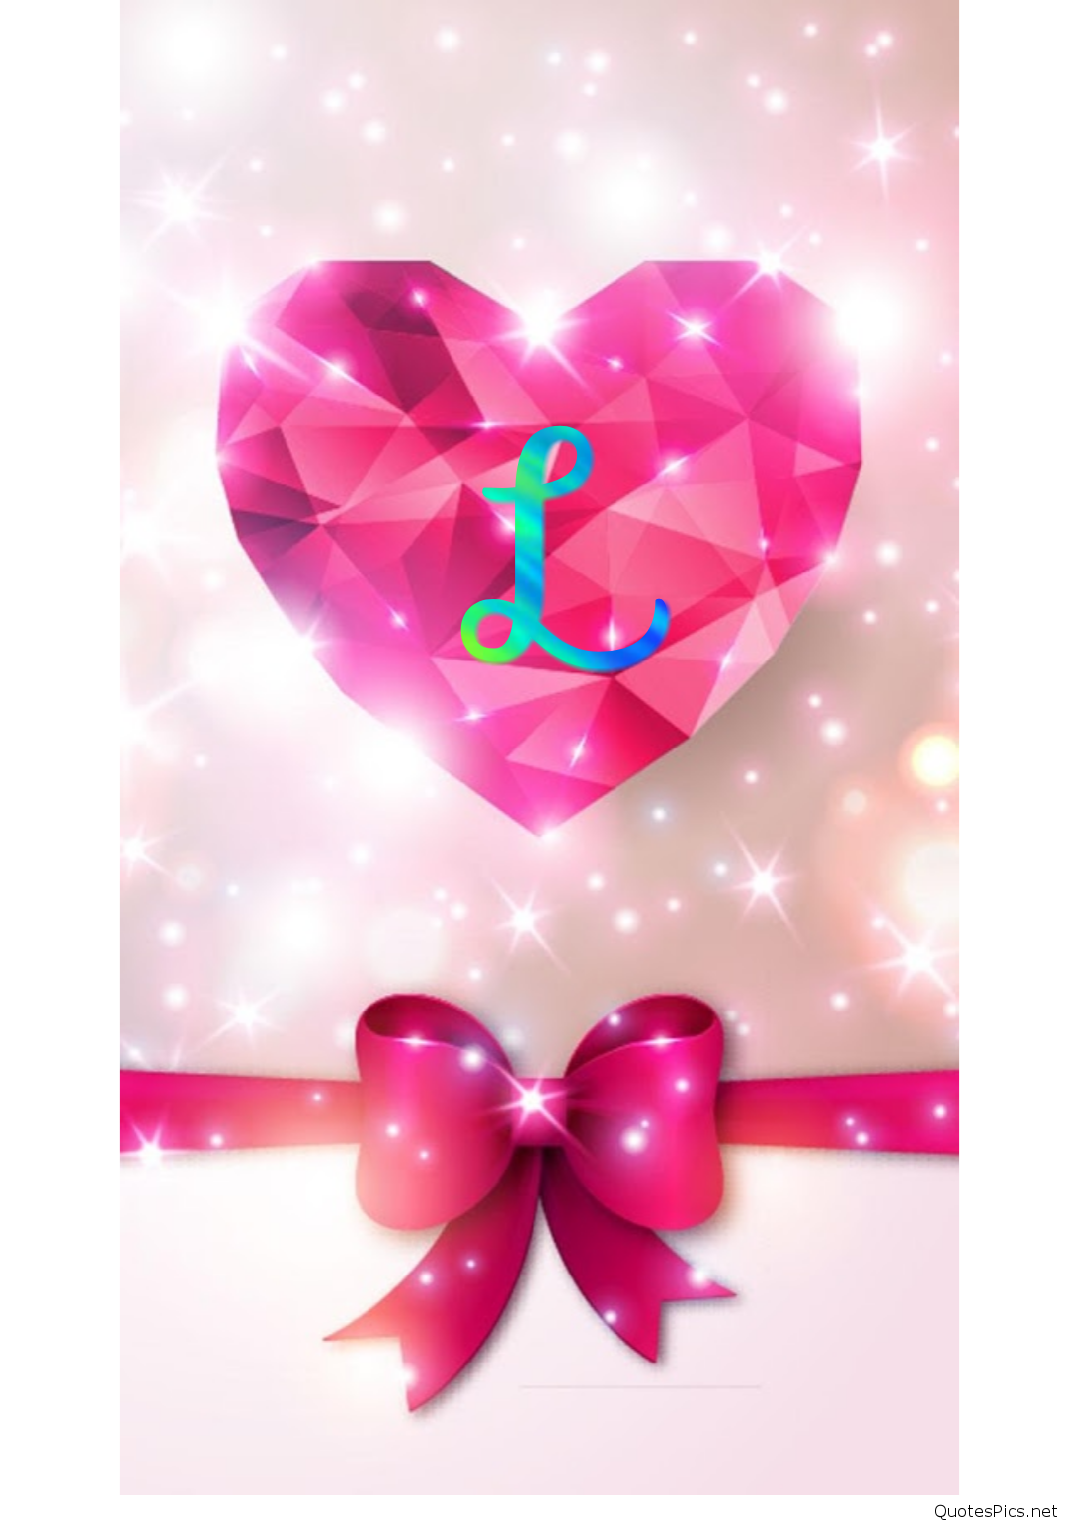 Letter L Wallpapers Cute Wallpaper For Everybody With Slike Za Pozadinu Telefona 1007390 Hd Wallpaper Backgrounds Download